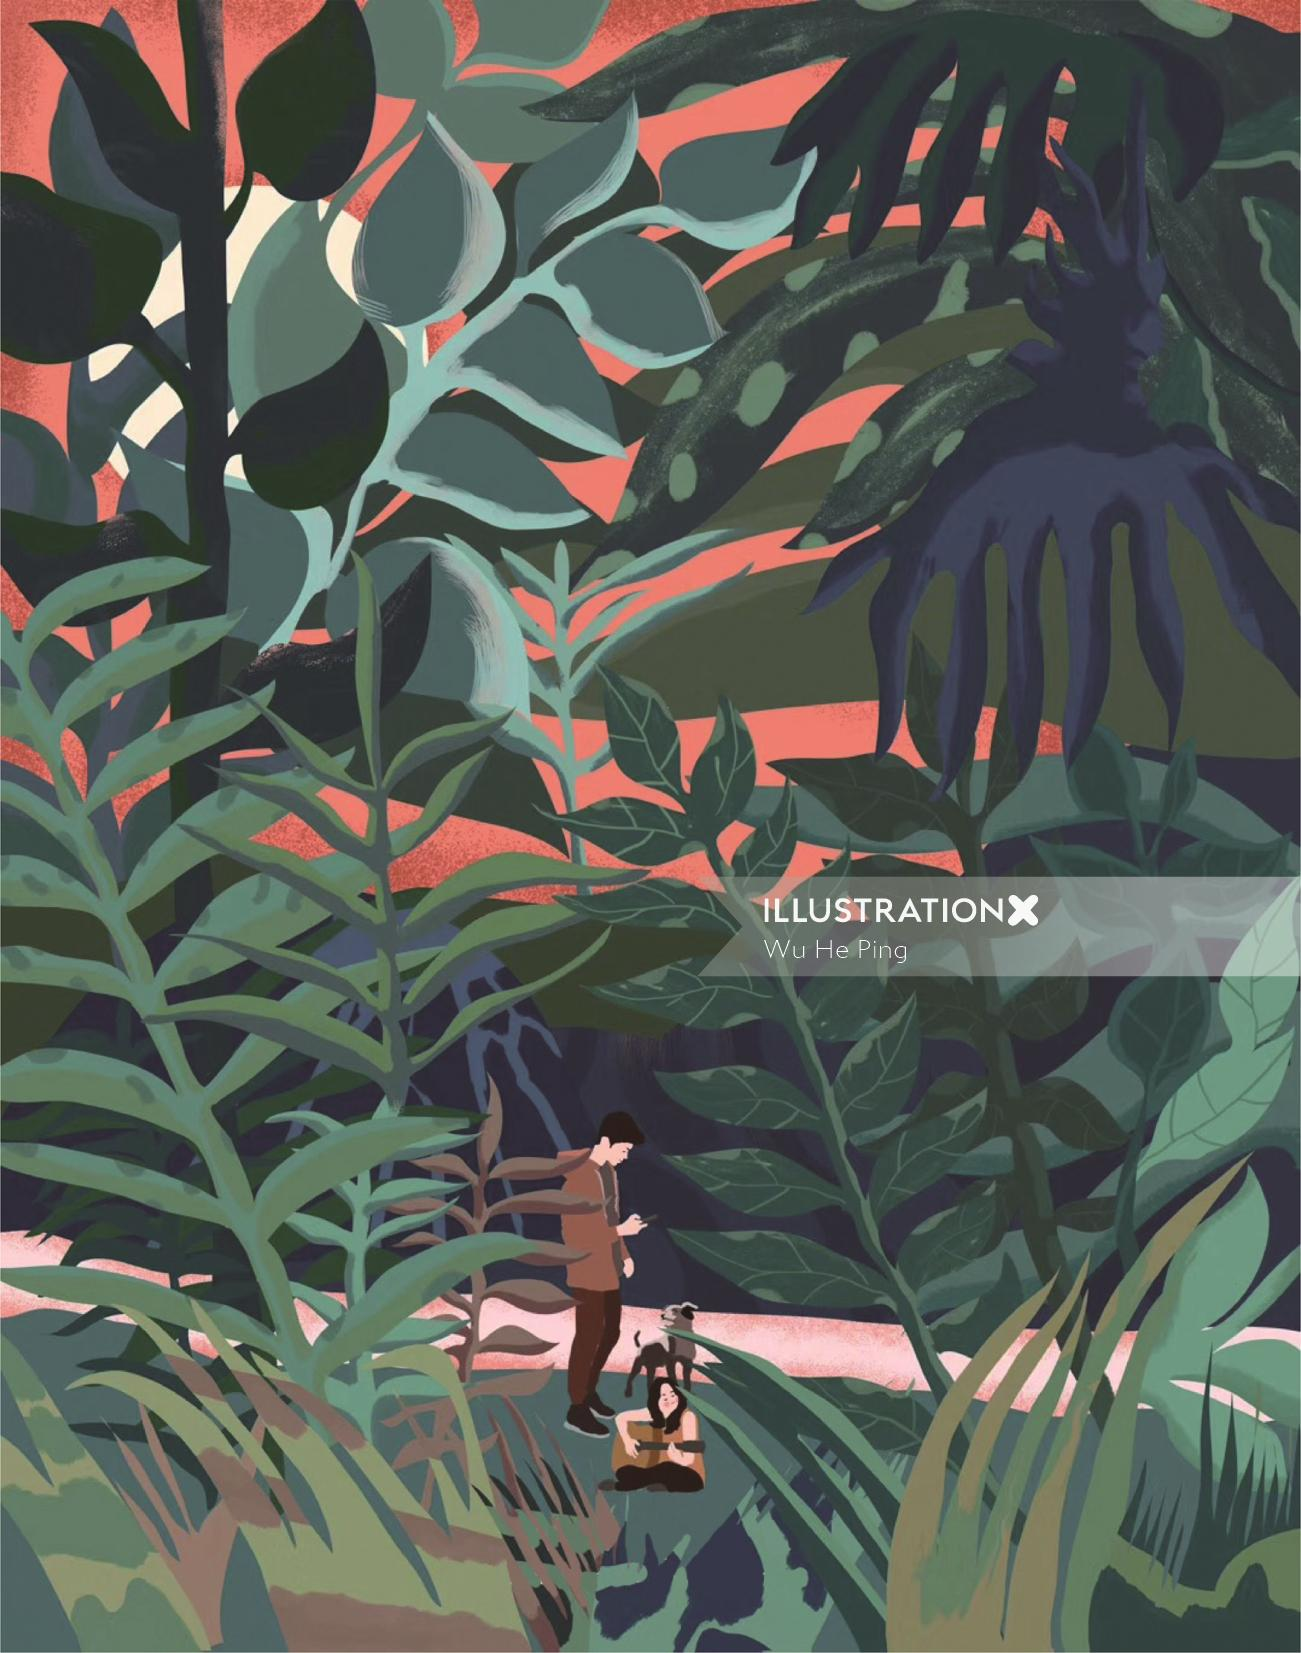 Graphical illustration of nature lovers